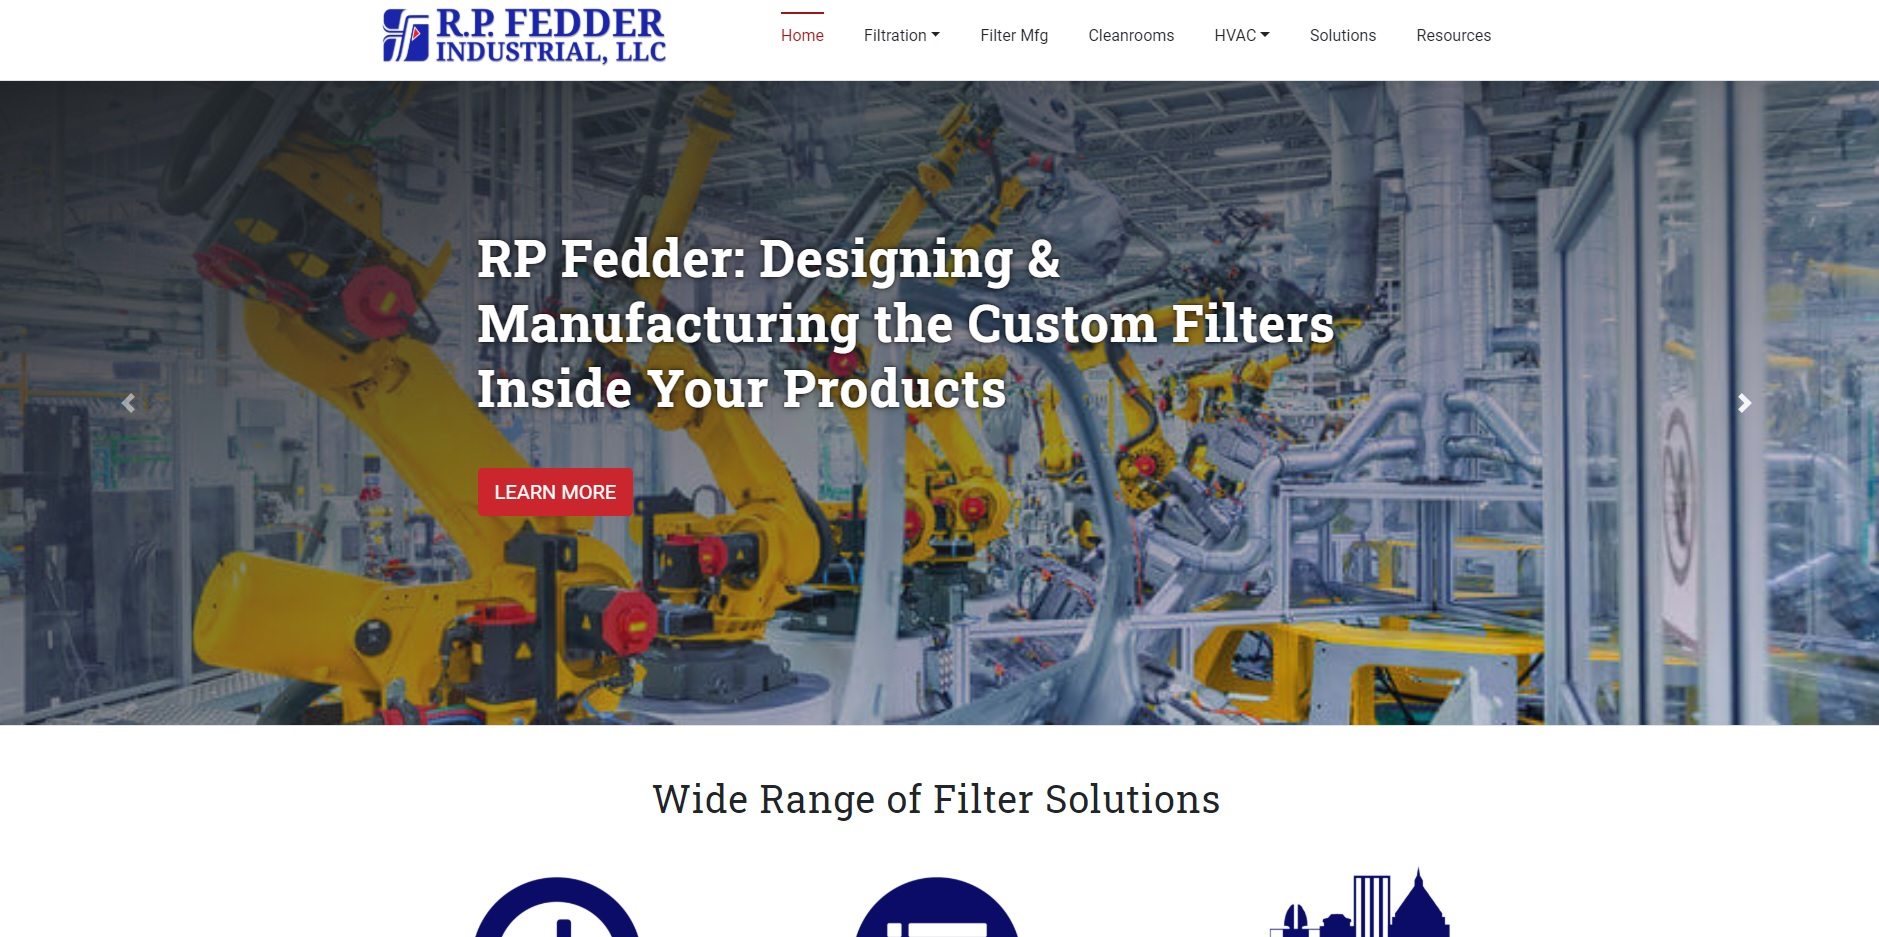 R.P. Fedder Corporation